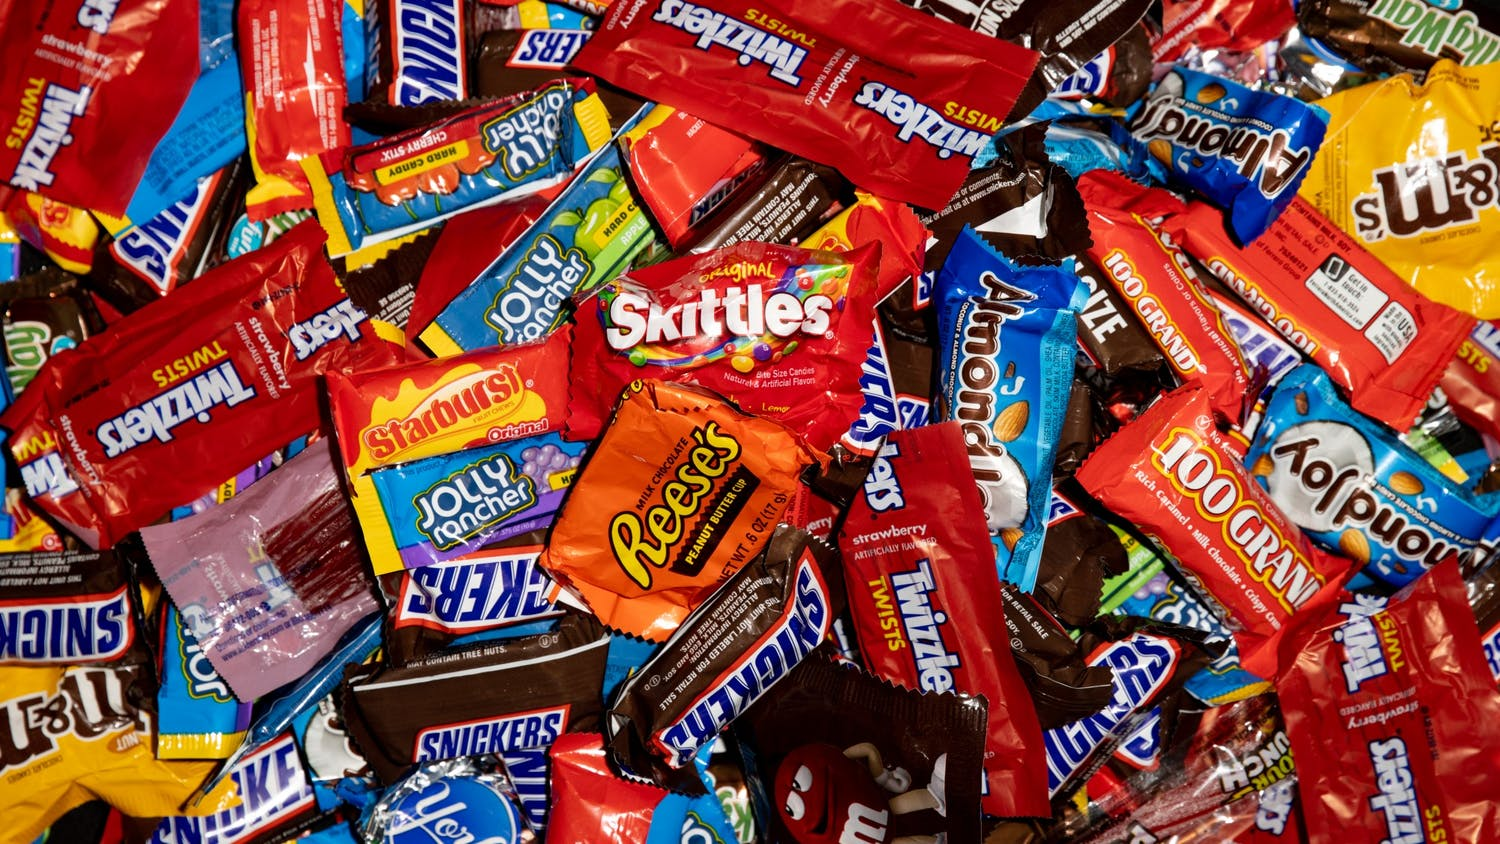 DTH Photo Illustration. In anticipation of Halloween, the Editorial Board offers opinions about various Halloween candies.